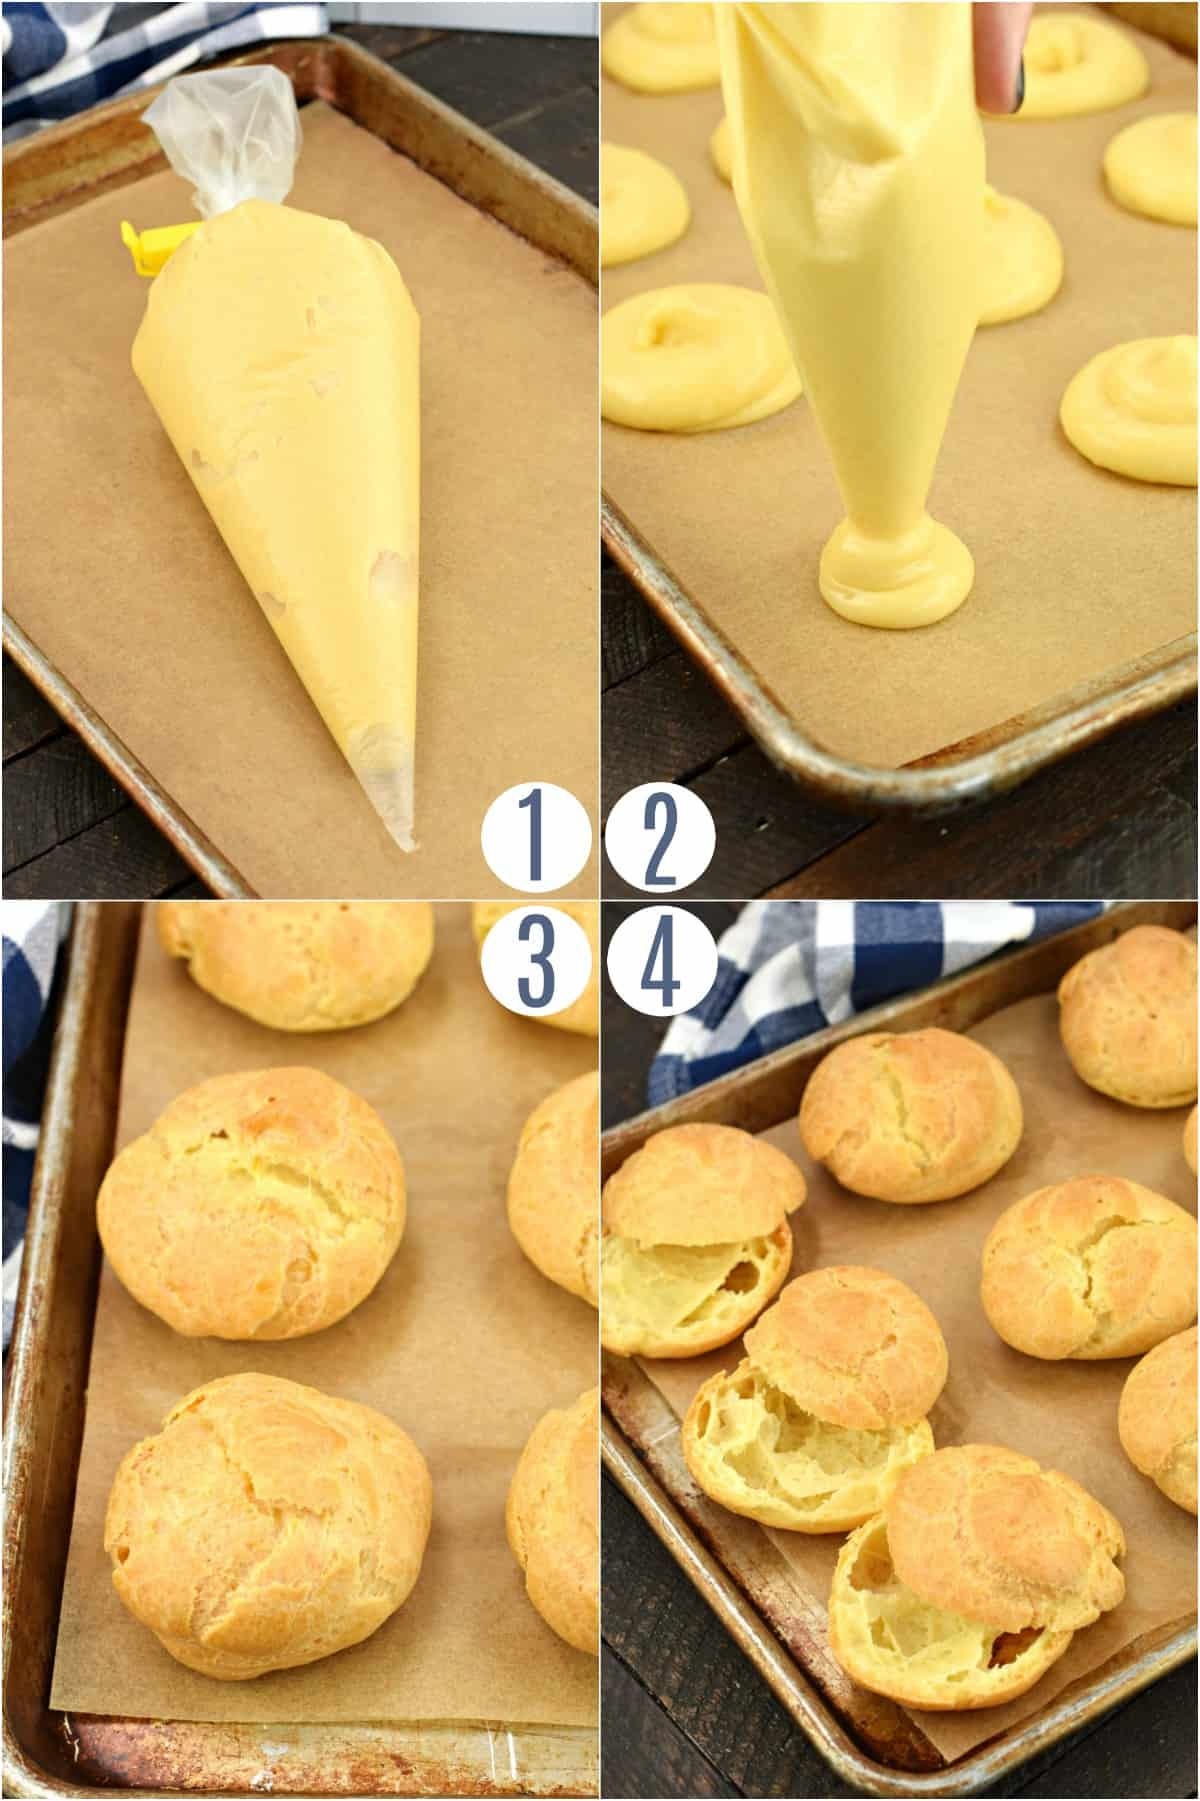 Step by step photos on how to make individual cream puffs.